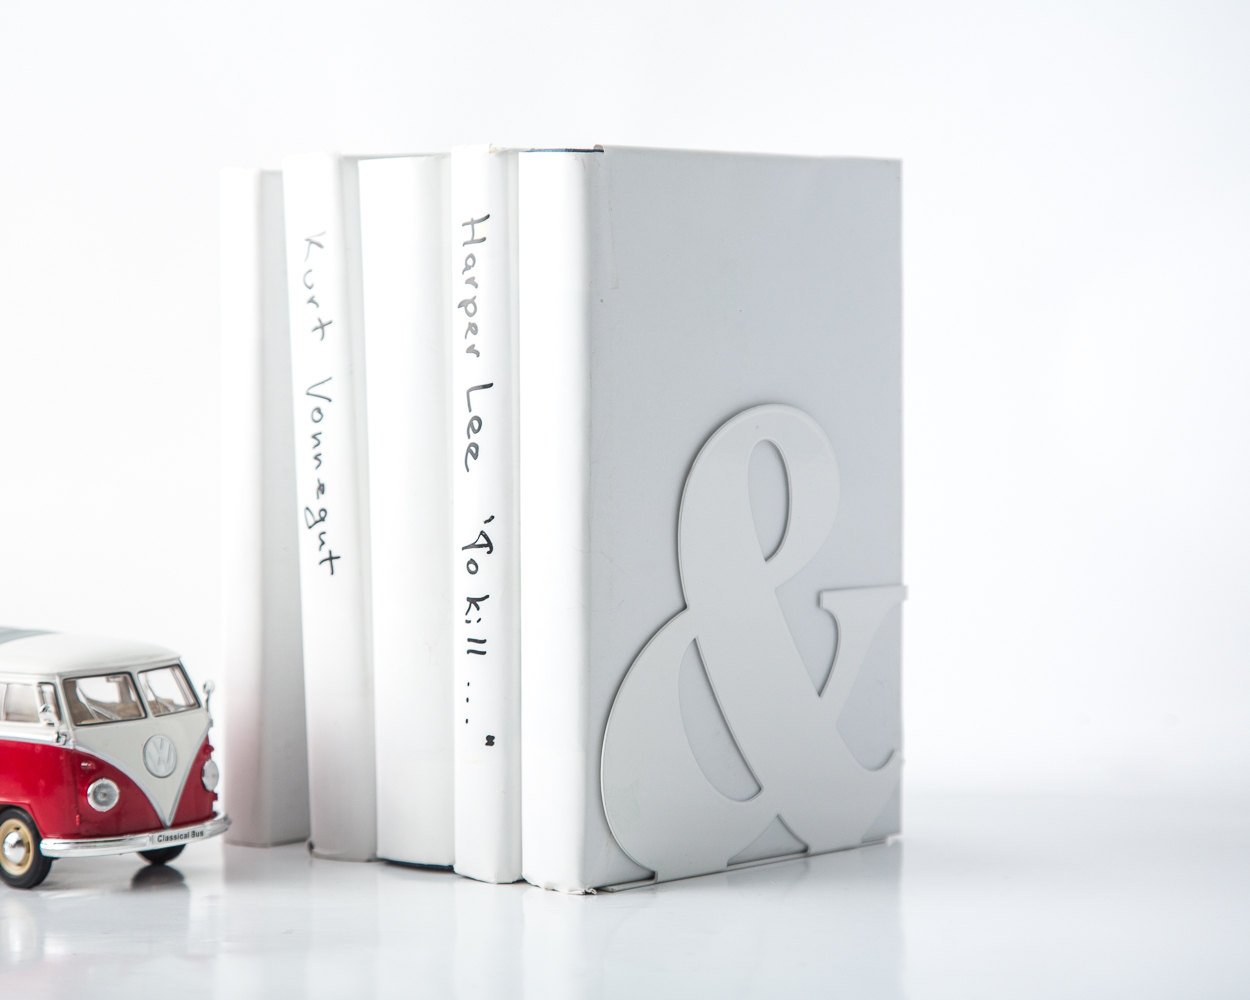 A pair of metal Bookends // Ampersnad // Stylish book holders for modern home // FREE SHIPPING